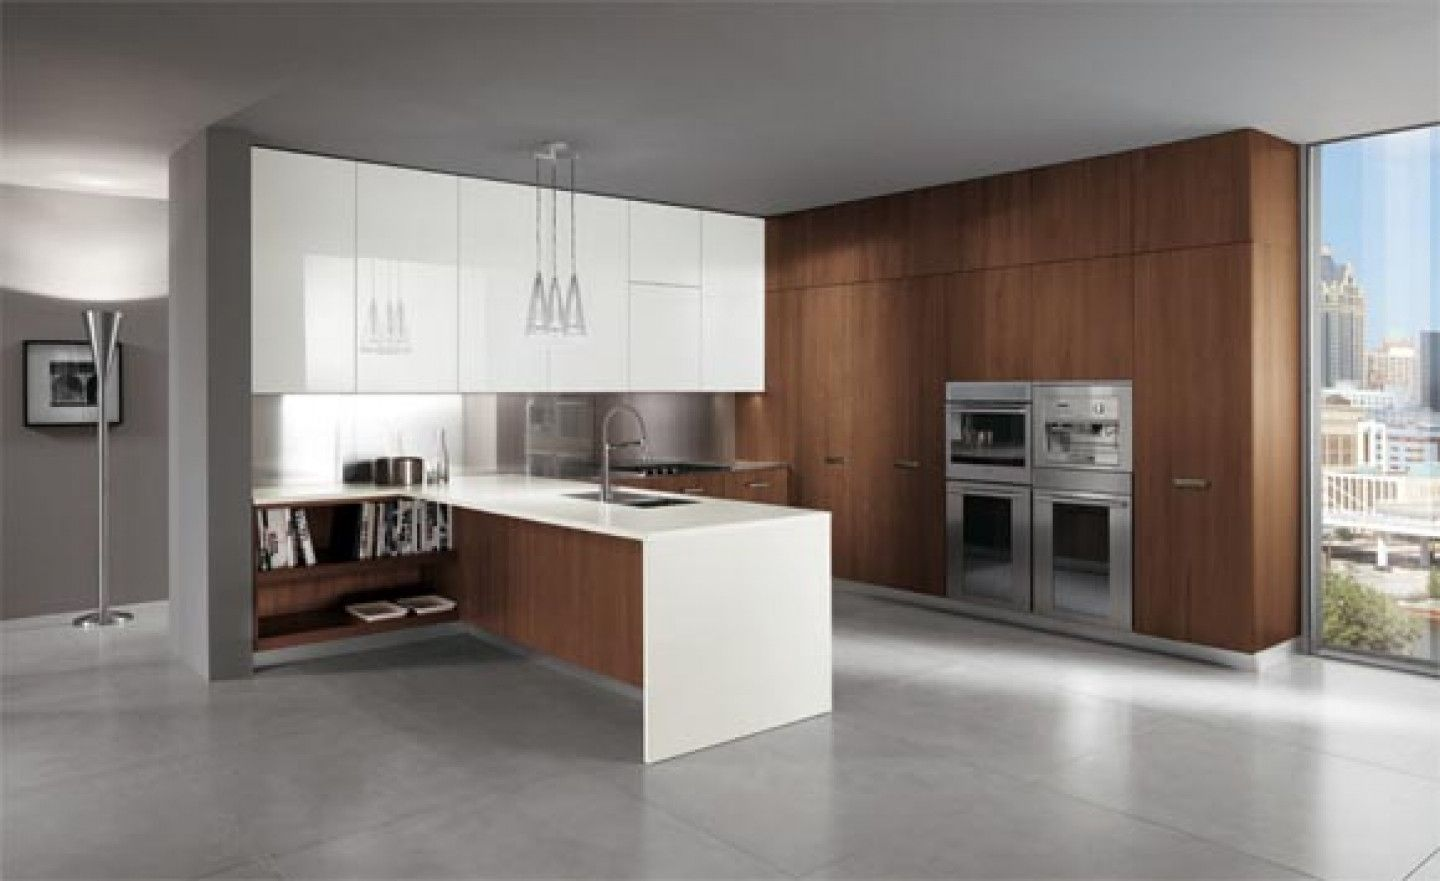 Italian Kitchen Cabinets Miami The Concept Of Artika Reworks Its Shapes To Live Within The Space With Harmony And Sim Modern Farmhouse Style Living Room Pedini Kitchen Italian Kitchen Design